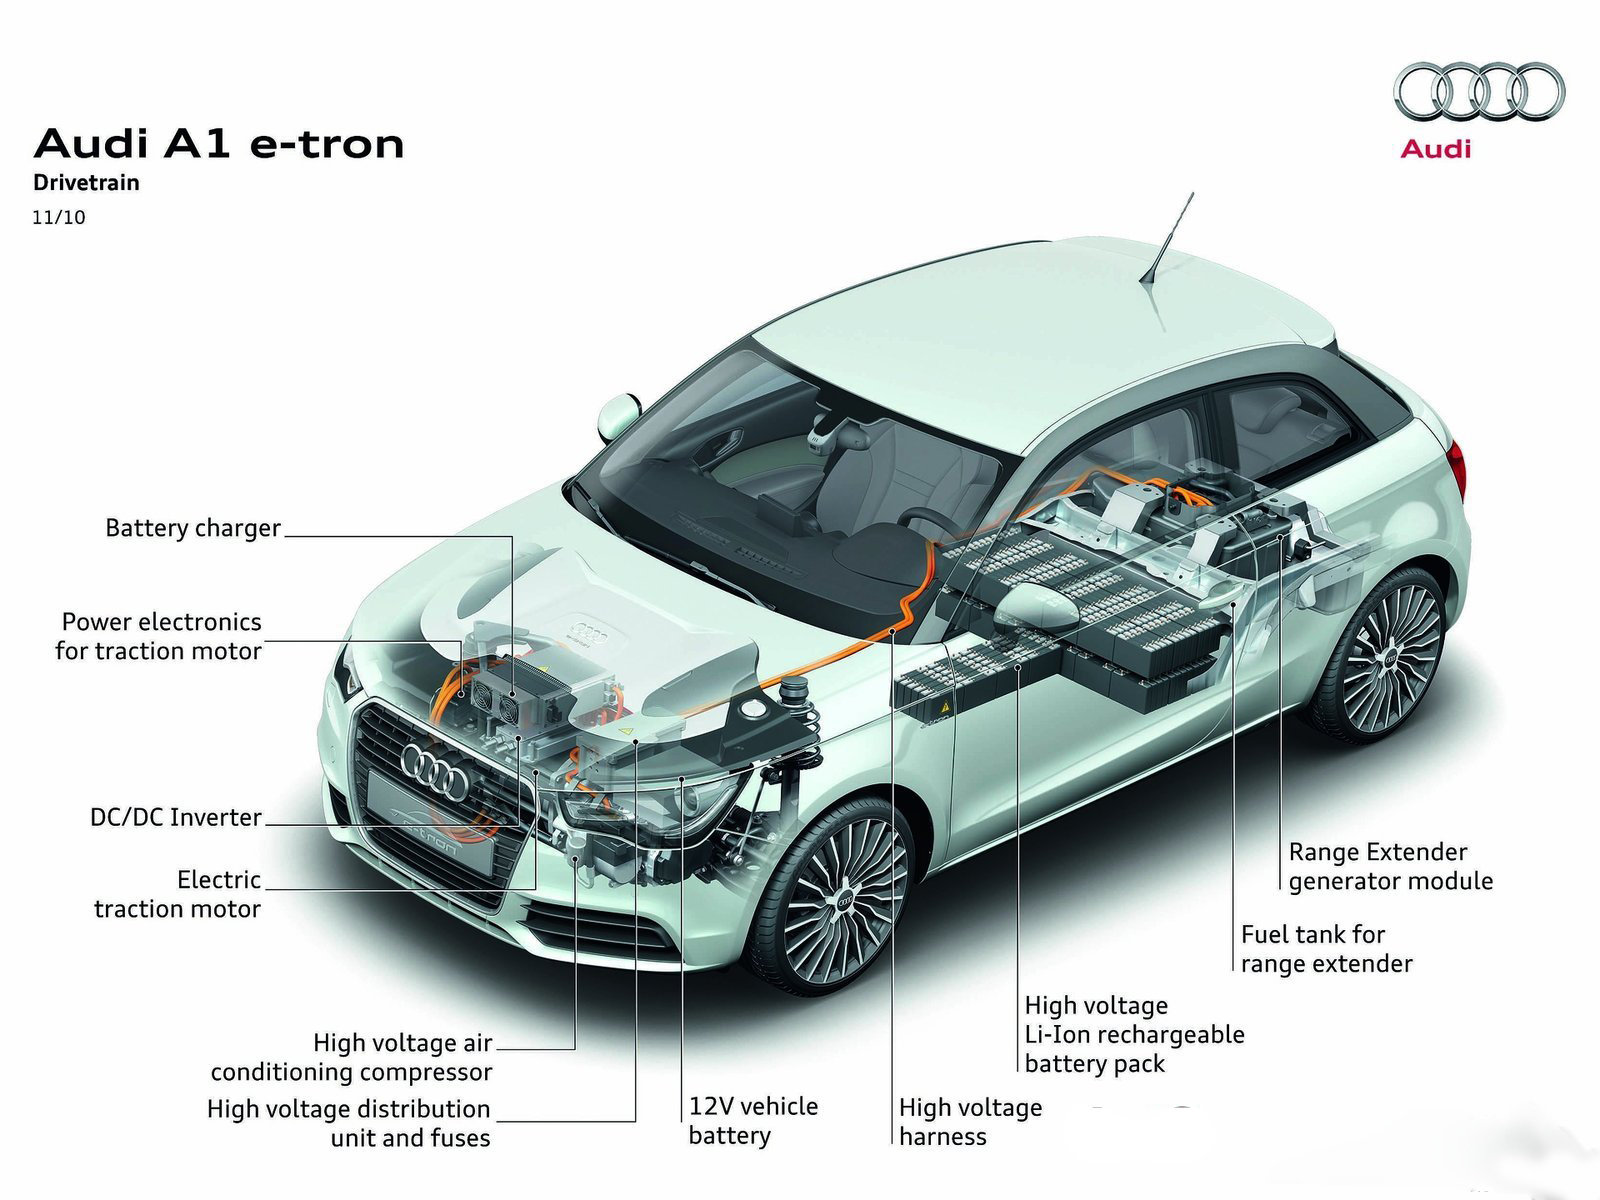 a1 engine bay diagram audi wiring diagrams online audi a1 engine bay diagram audi wiring diagrams online